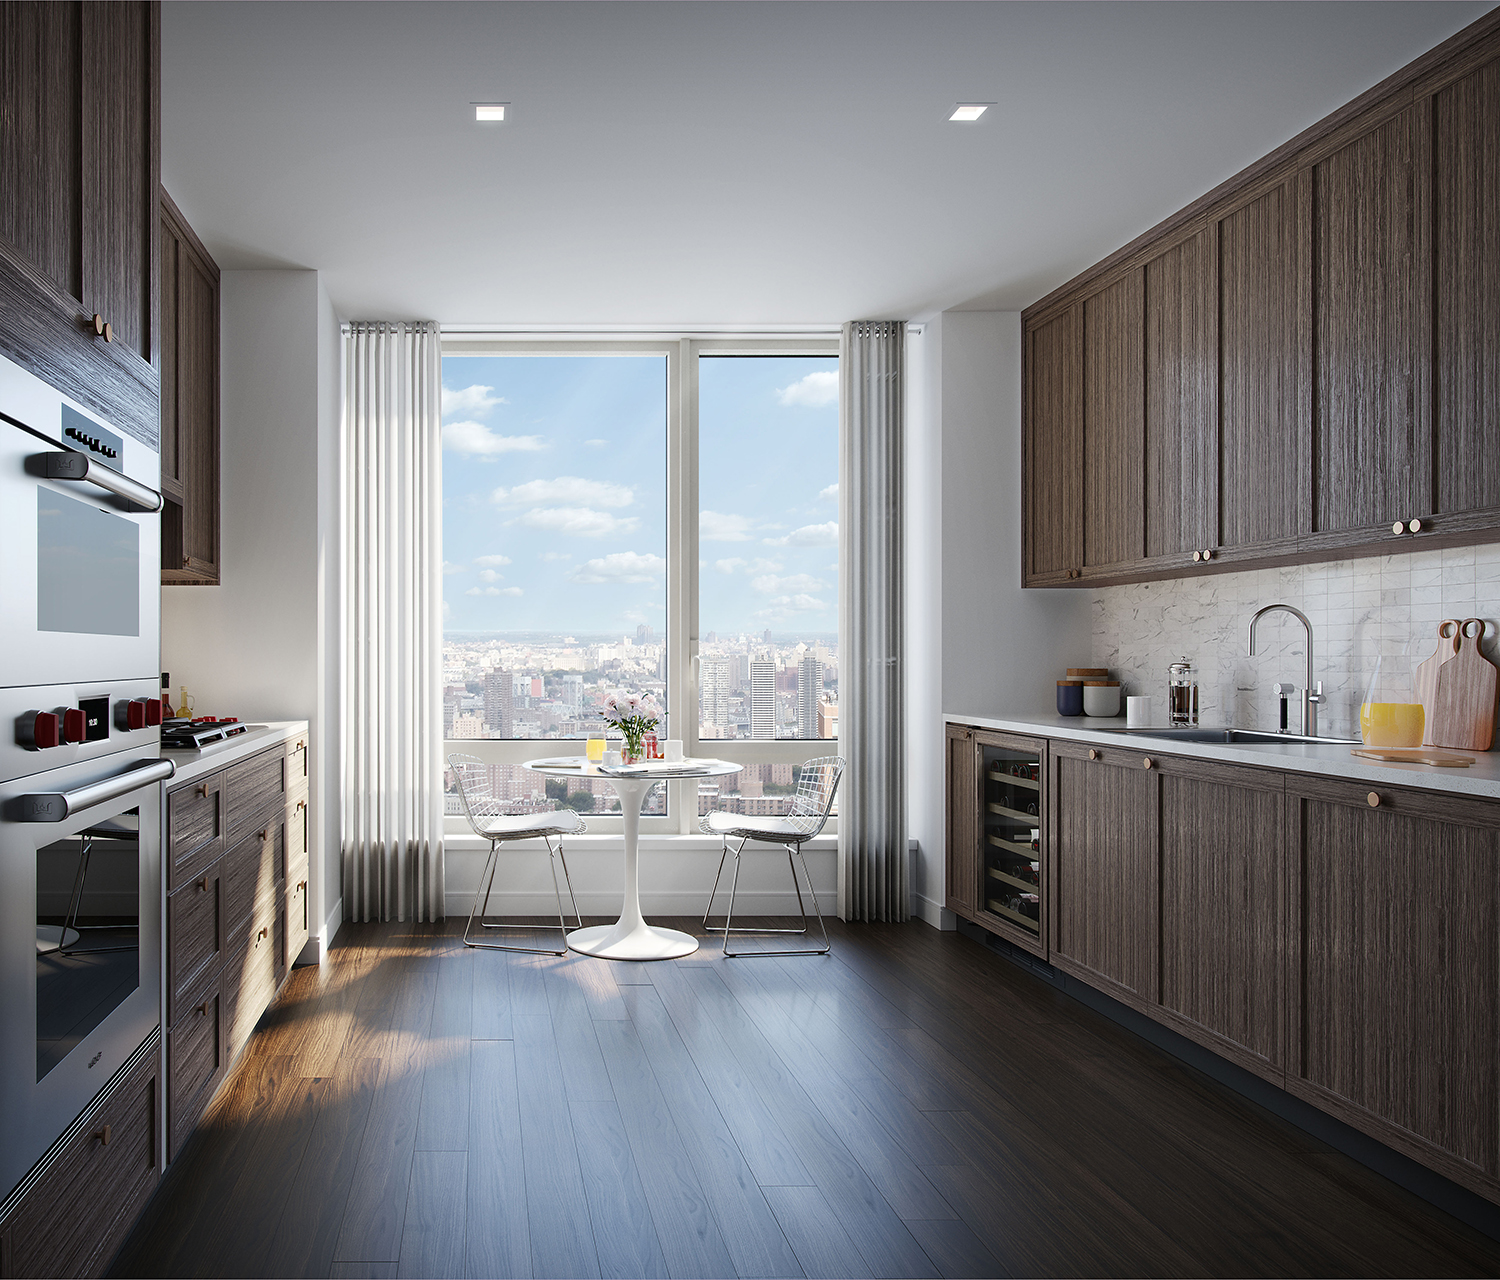 Rendering of a kitchen at the Easton. Credit: Moso Studio